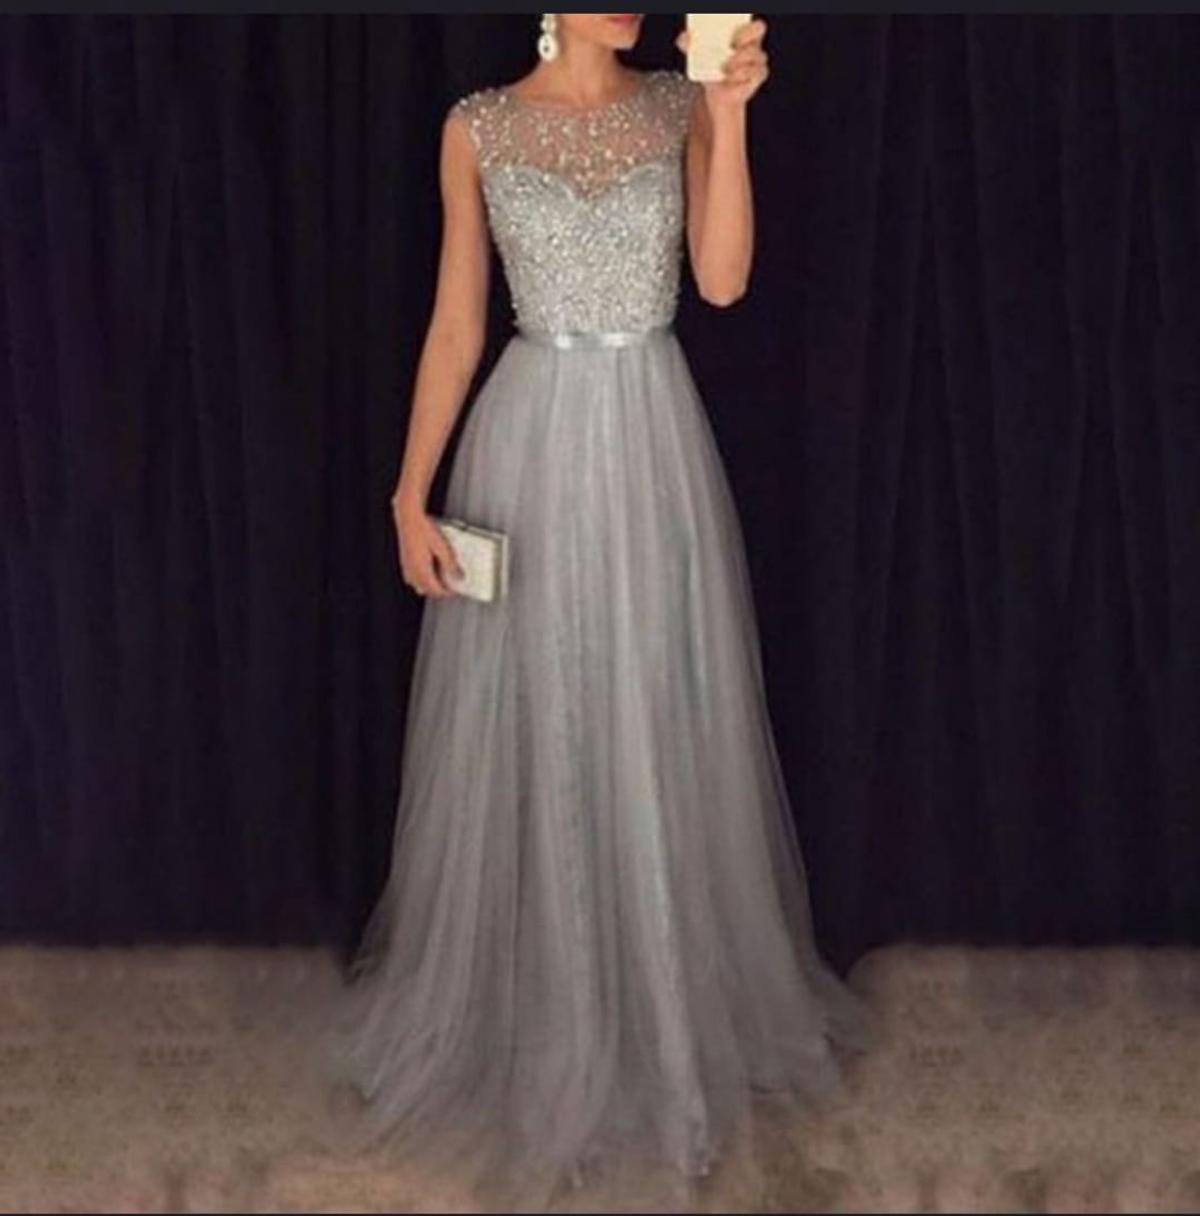 Abendkleid grau /silber in 10 Lampertheim for €10.10 for sale